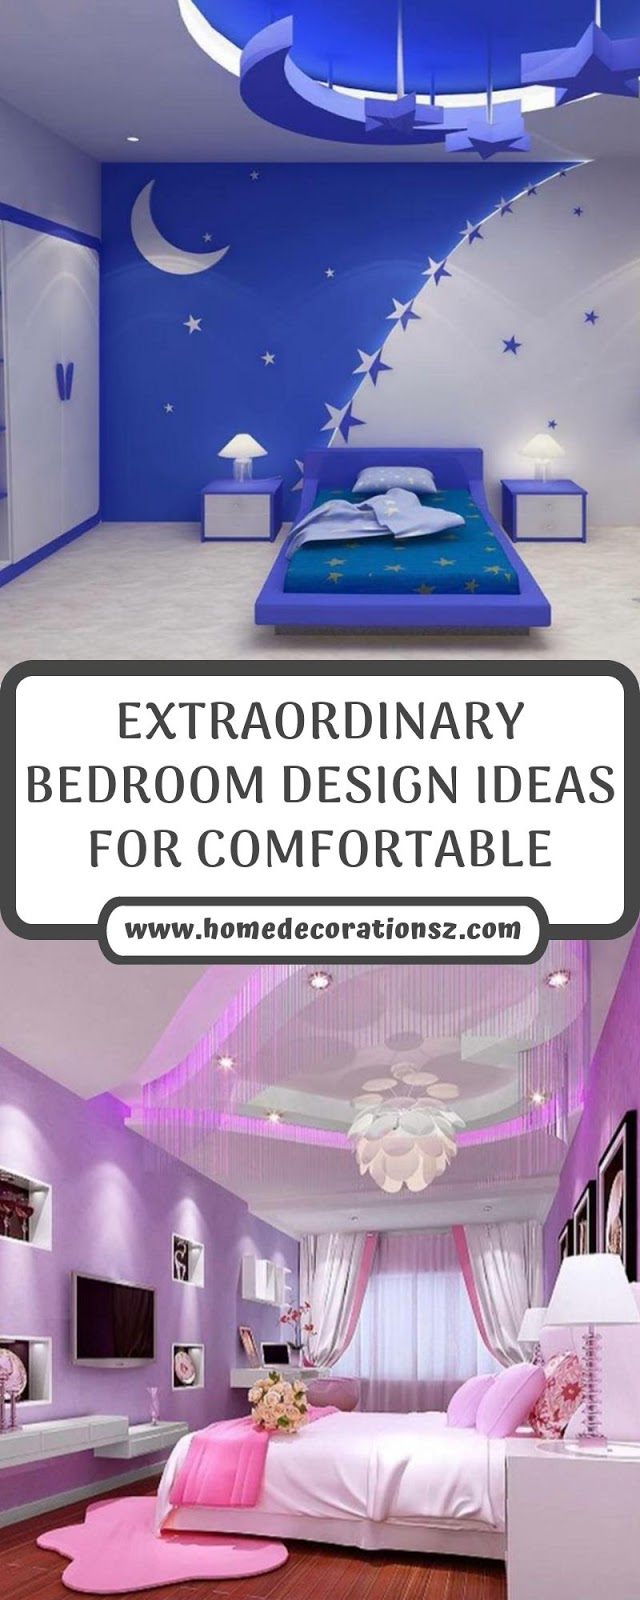 EXTRAORDINARY BEDROOM DESIGN IDEAS FOR COMFORTABLE